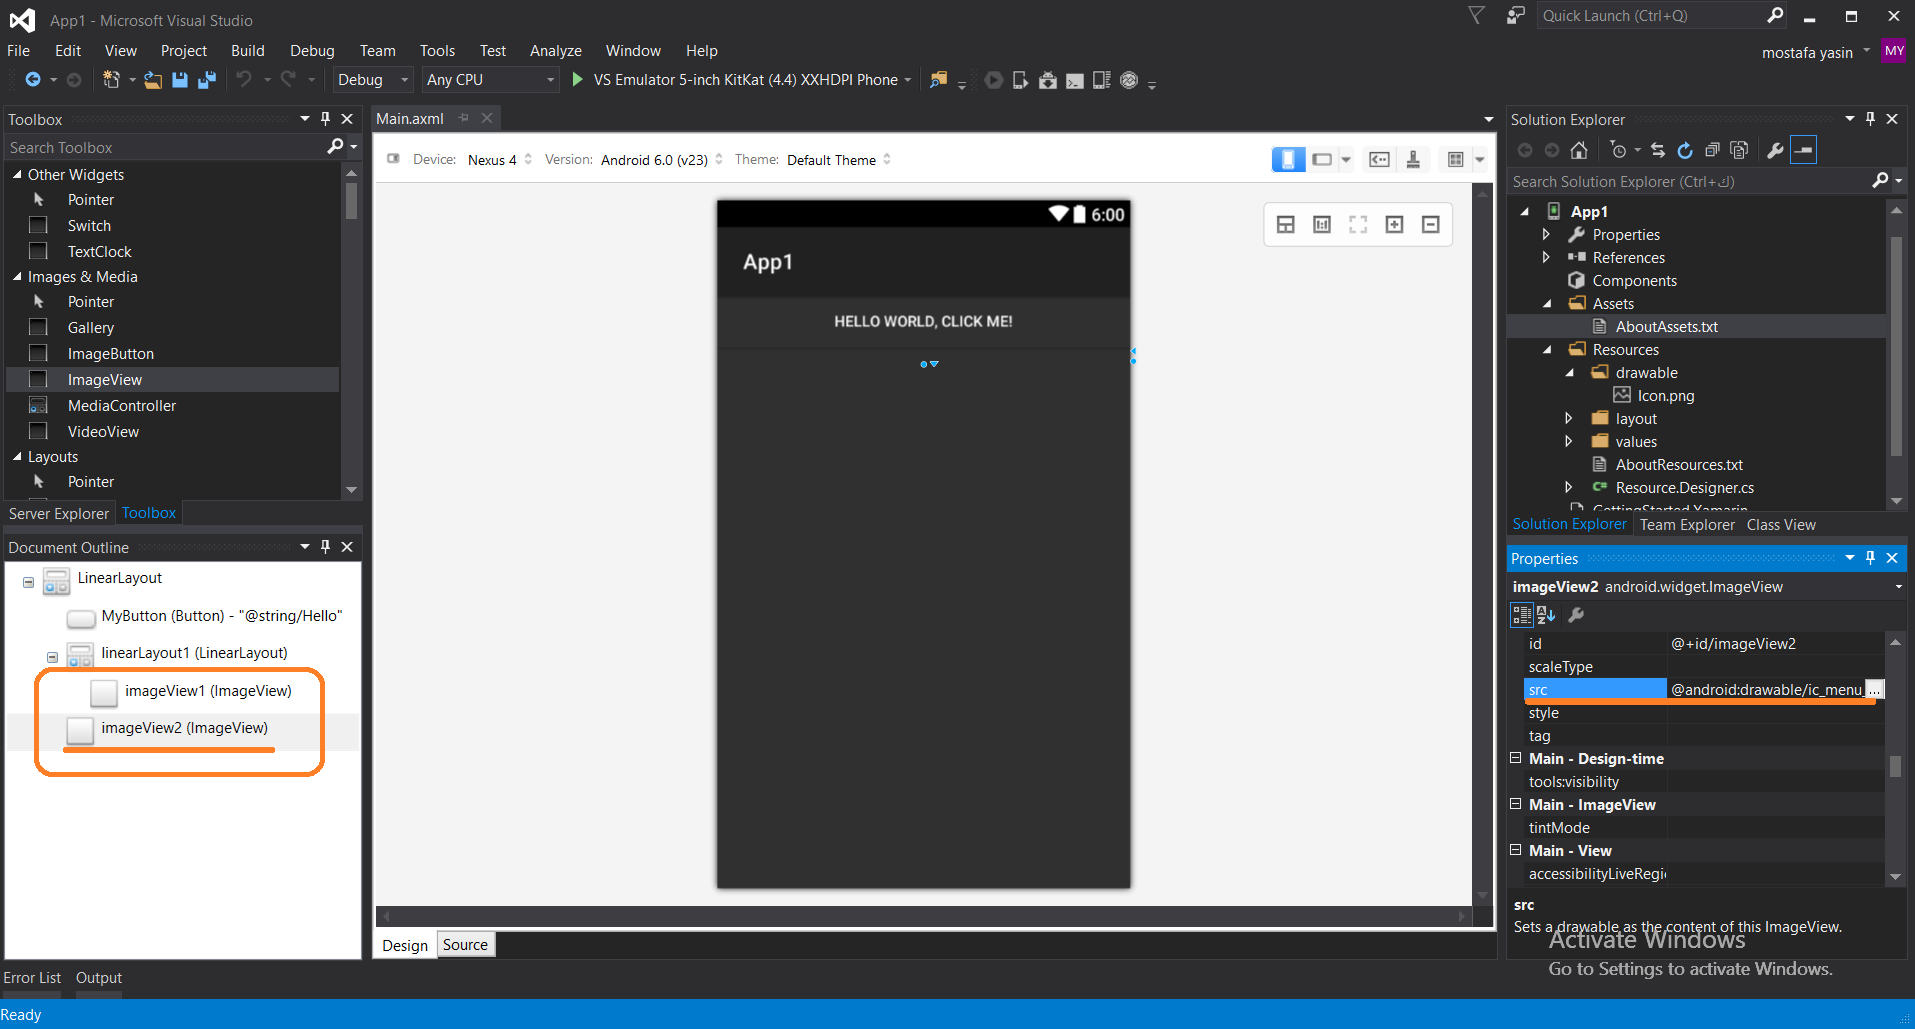 Xamarin Image In Imageview Doesn T Appear In My Design But Appear On Avd Xamarin Community Forums